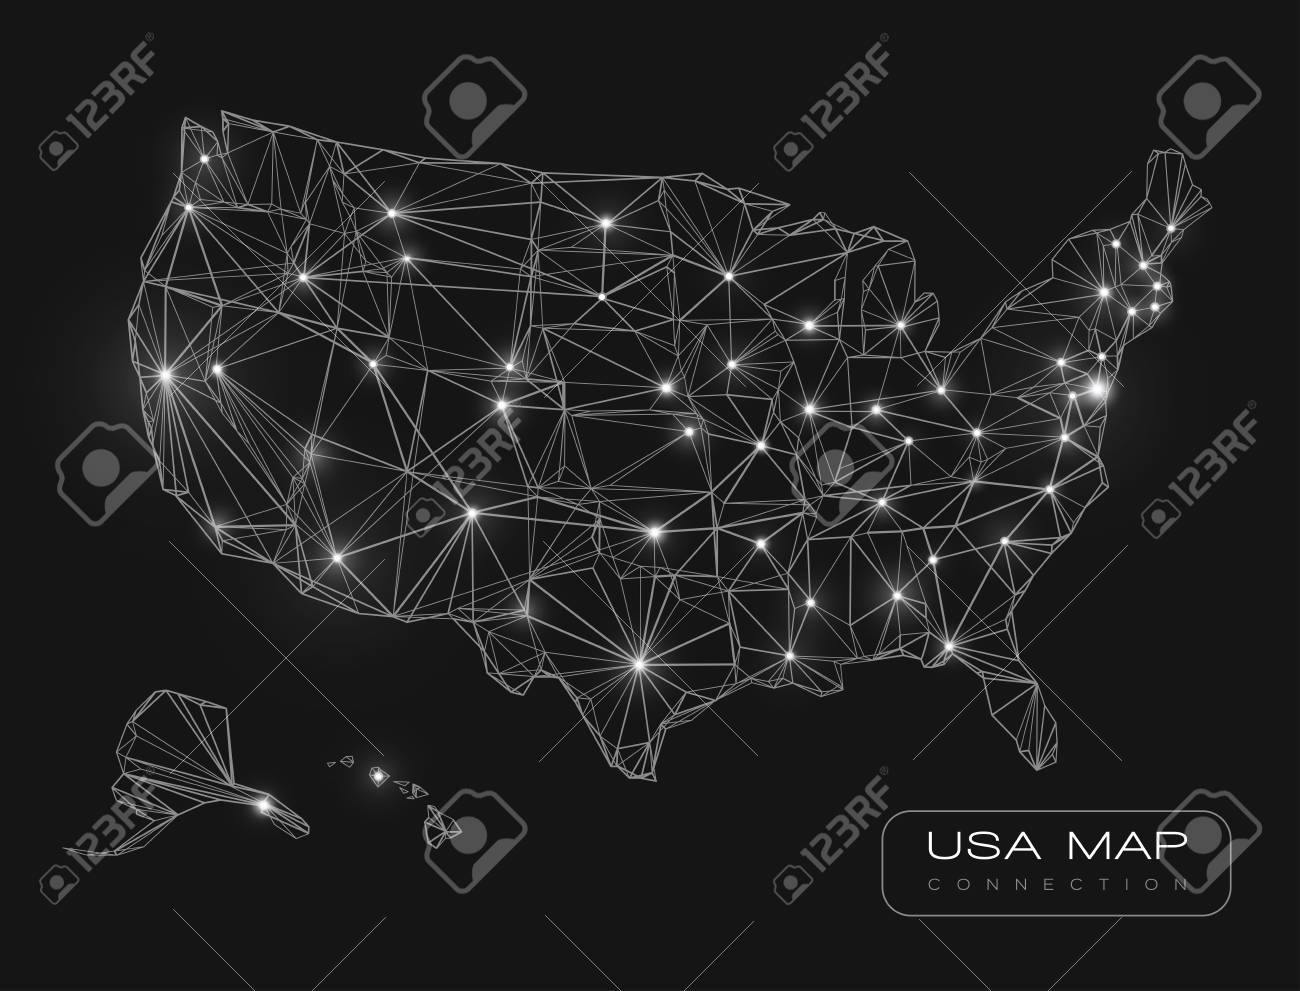 United States map abstract vector background - black and white.. on black and white world map, black united states, black and white birds of north america, solid black map of us, black and white drawings of angels, black and white clip art of flowers, black and white with a splash of color, black and white outline usa map, black and white map middle east, black and white coloring pages of flowers, black and white us flag, black and white clip art of landforms, black and white usa map with state names, black and white map north america,